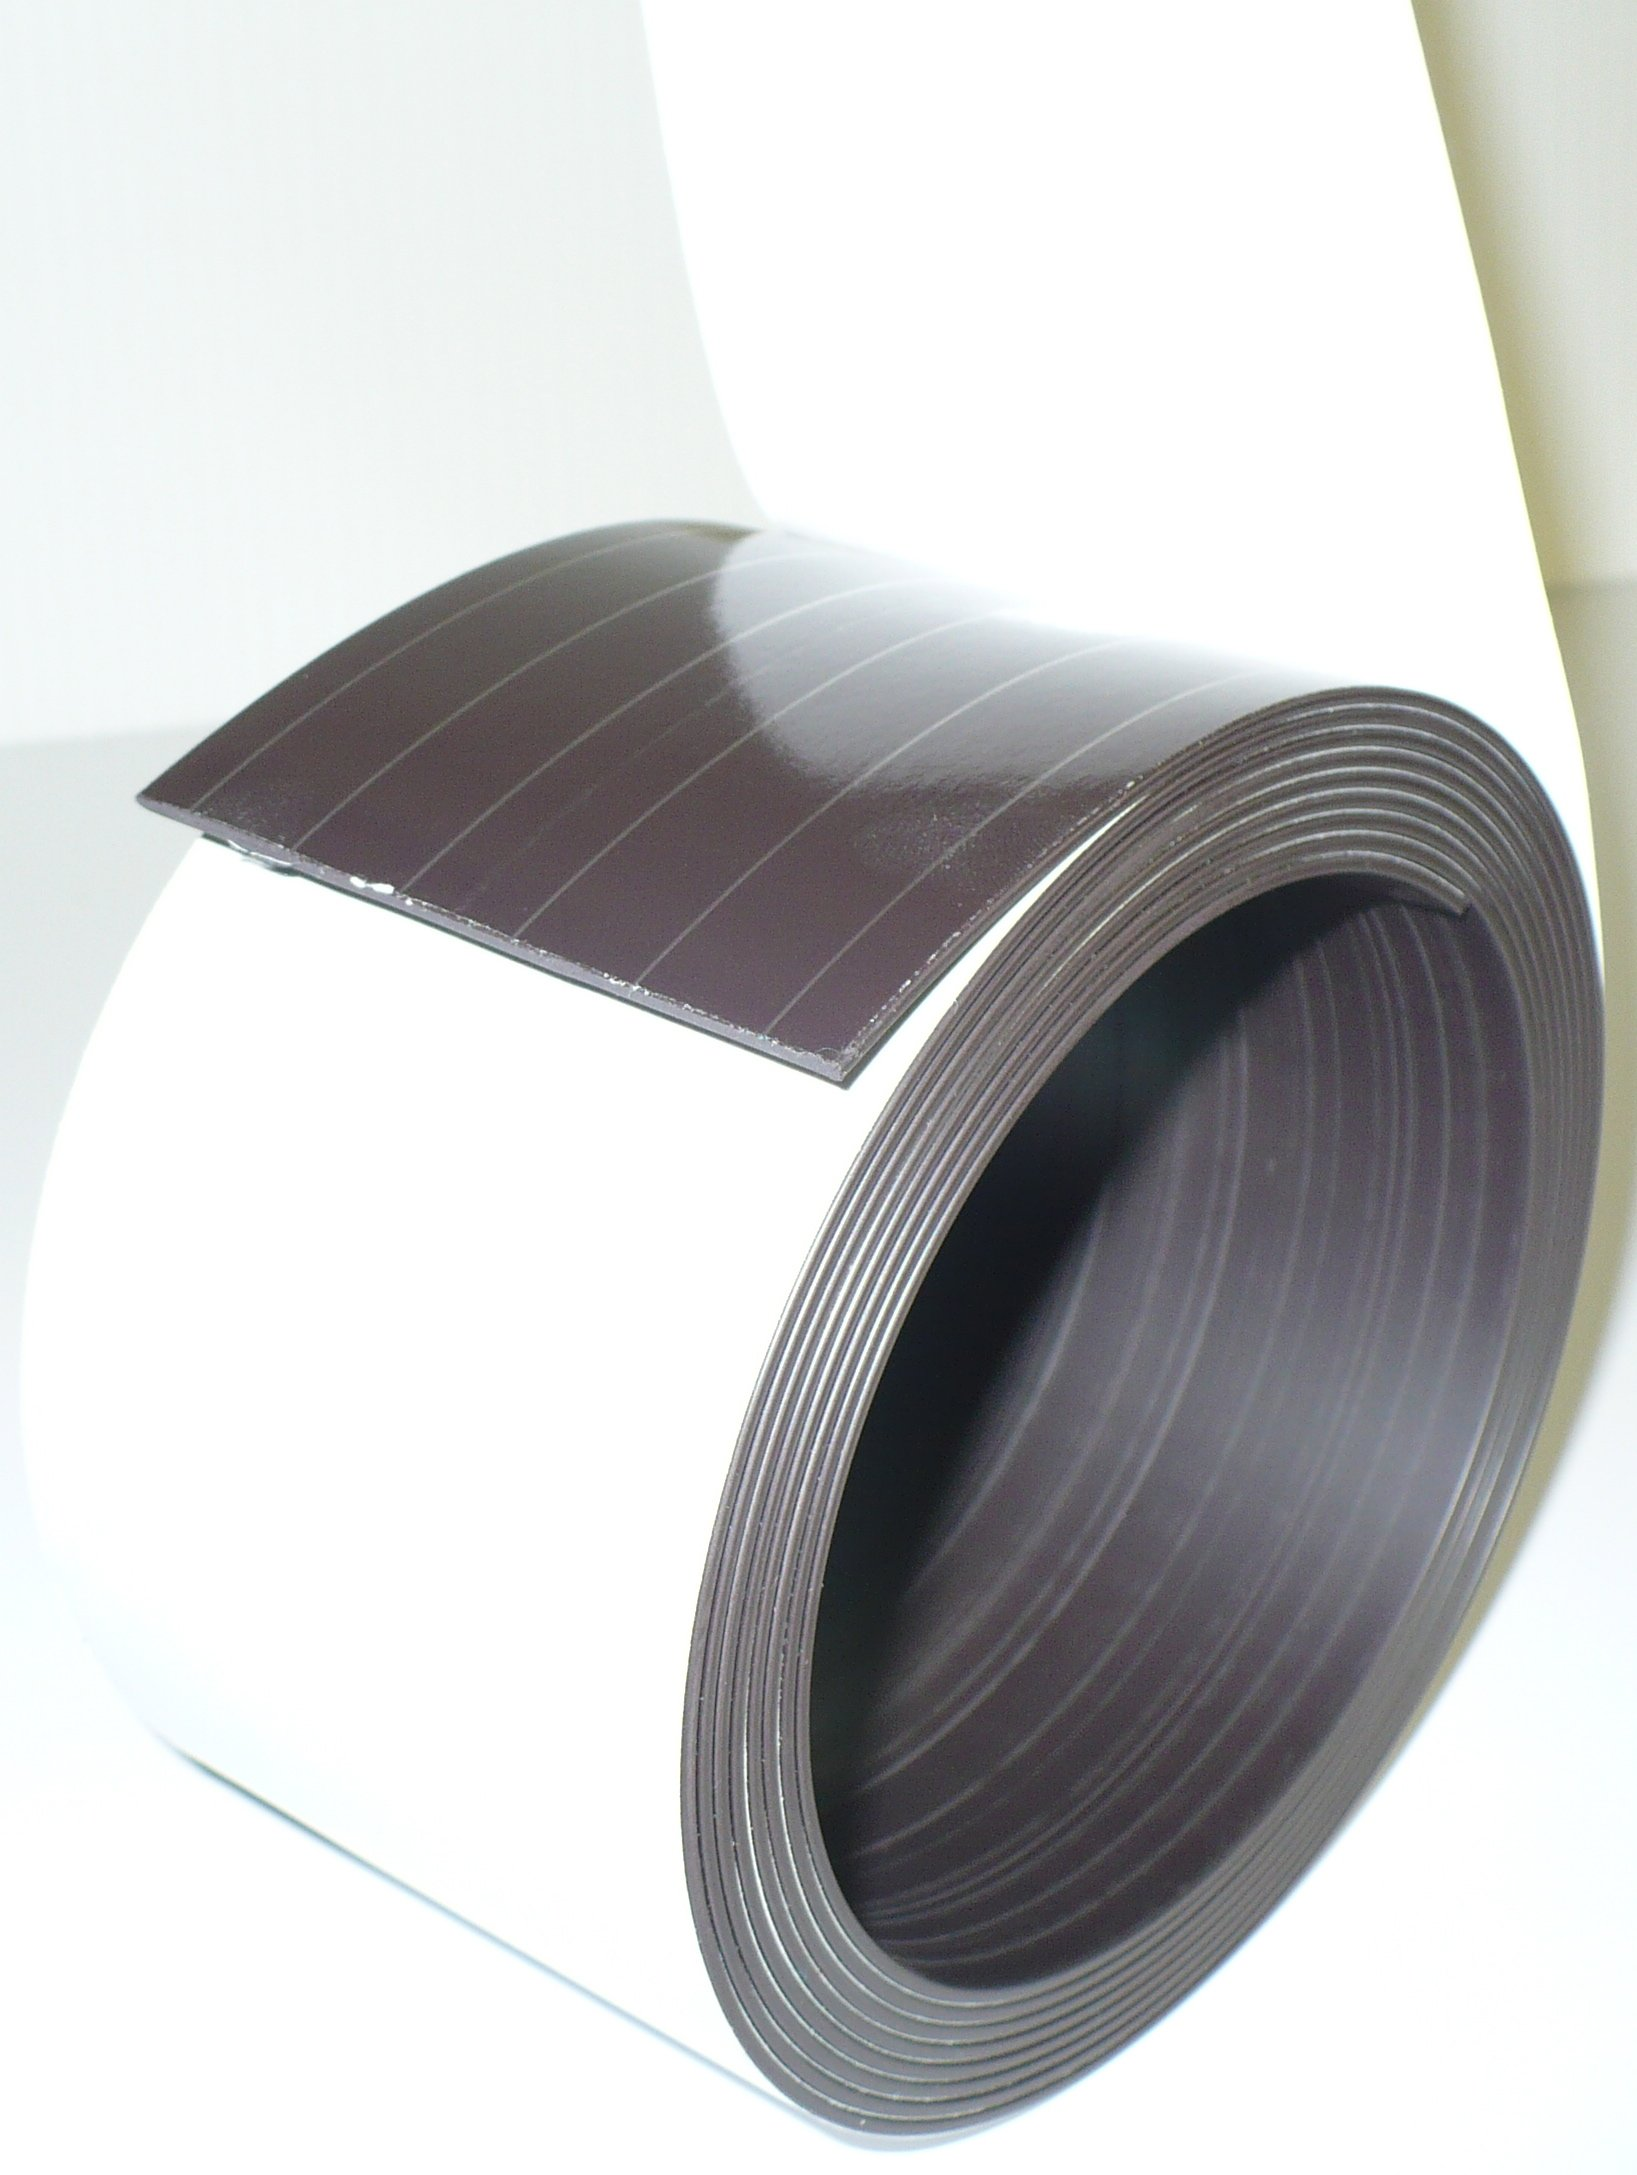 3'' X 10' - 60 mil Adhesive Magnetic Tape Strip Roll by Discount Magnets (Image #1)